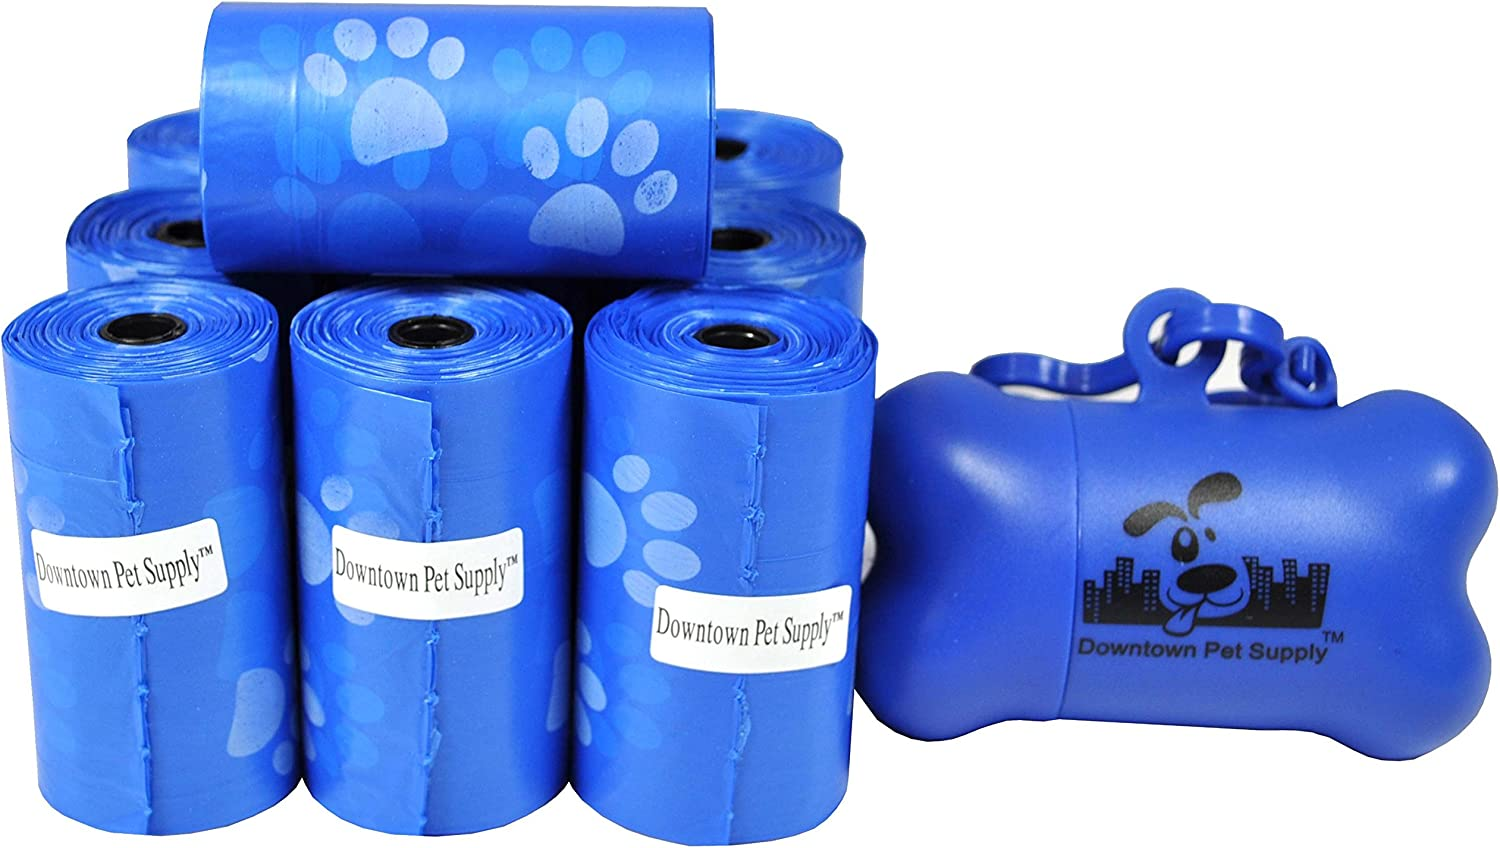 220 Pet Waste Bags, Dog Waste Bags, Bulk Poop Bags with Leash Clip and Bone Bag Dispenser - (220 Bags, Blue with Paw Prints)